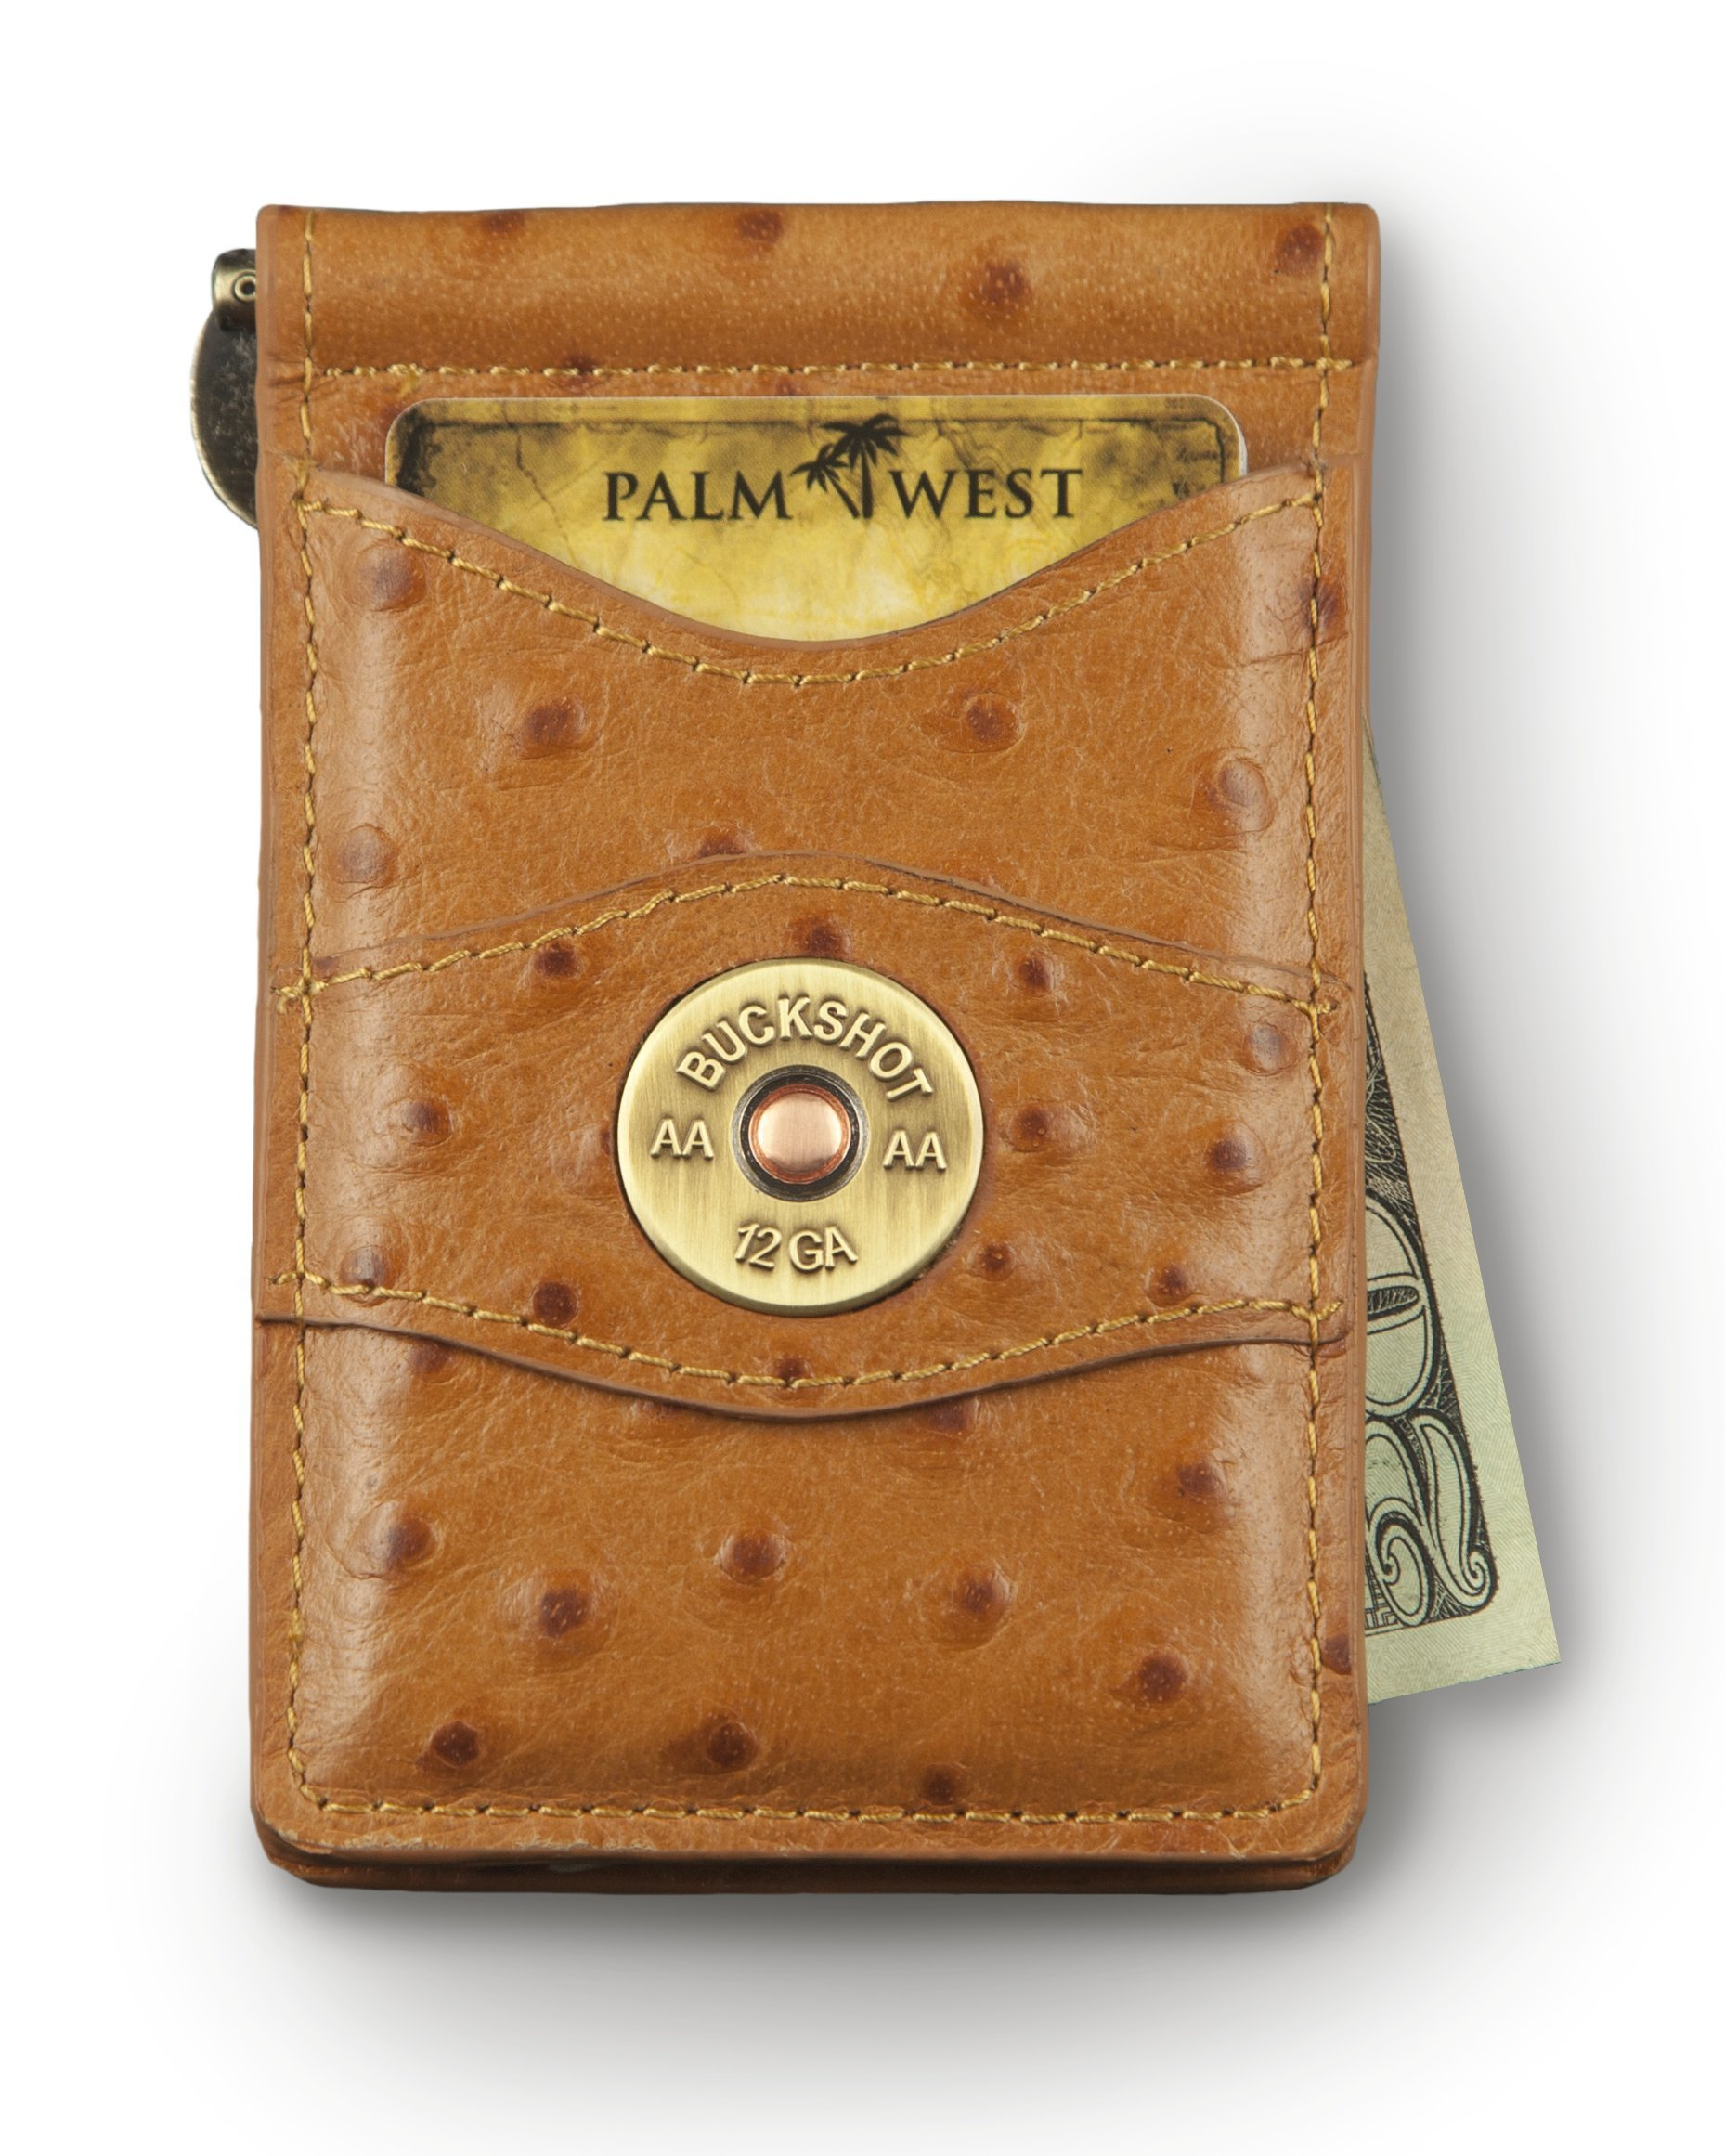 Palm West Leather Minimalist Leather Money Clip Wallet with RFID - Medal (Natural Ostrich Print Leather, 12 Gauge Medallion)